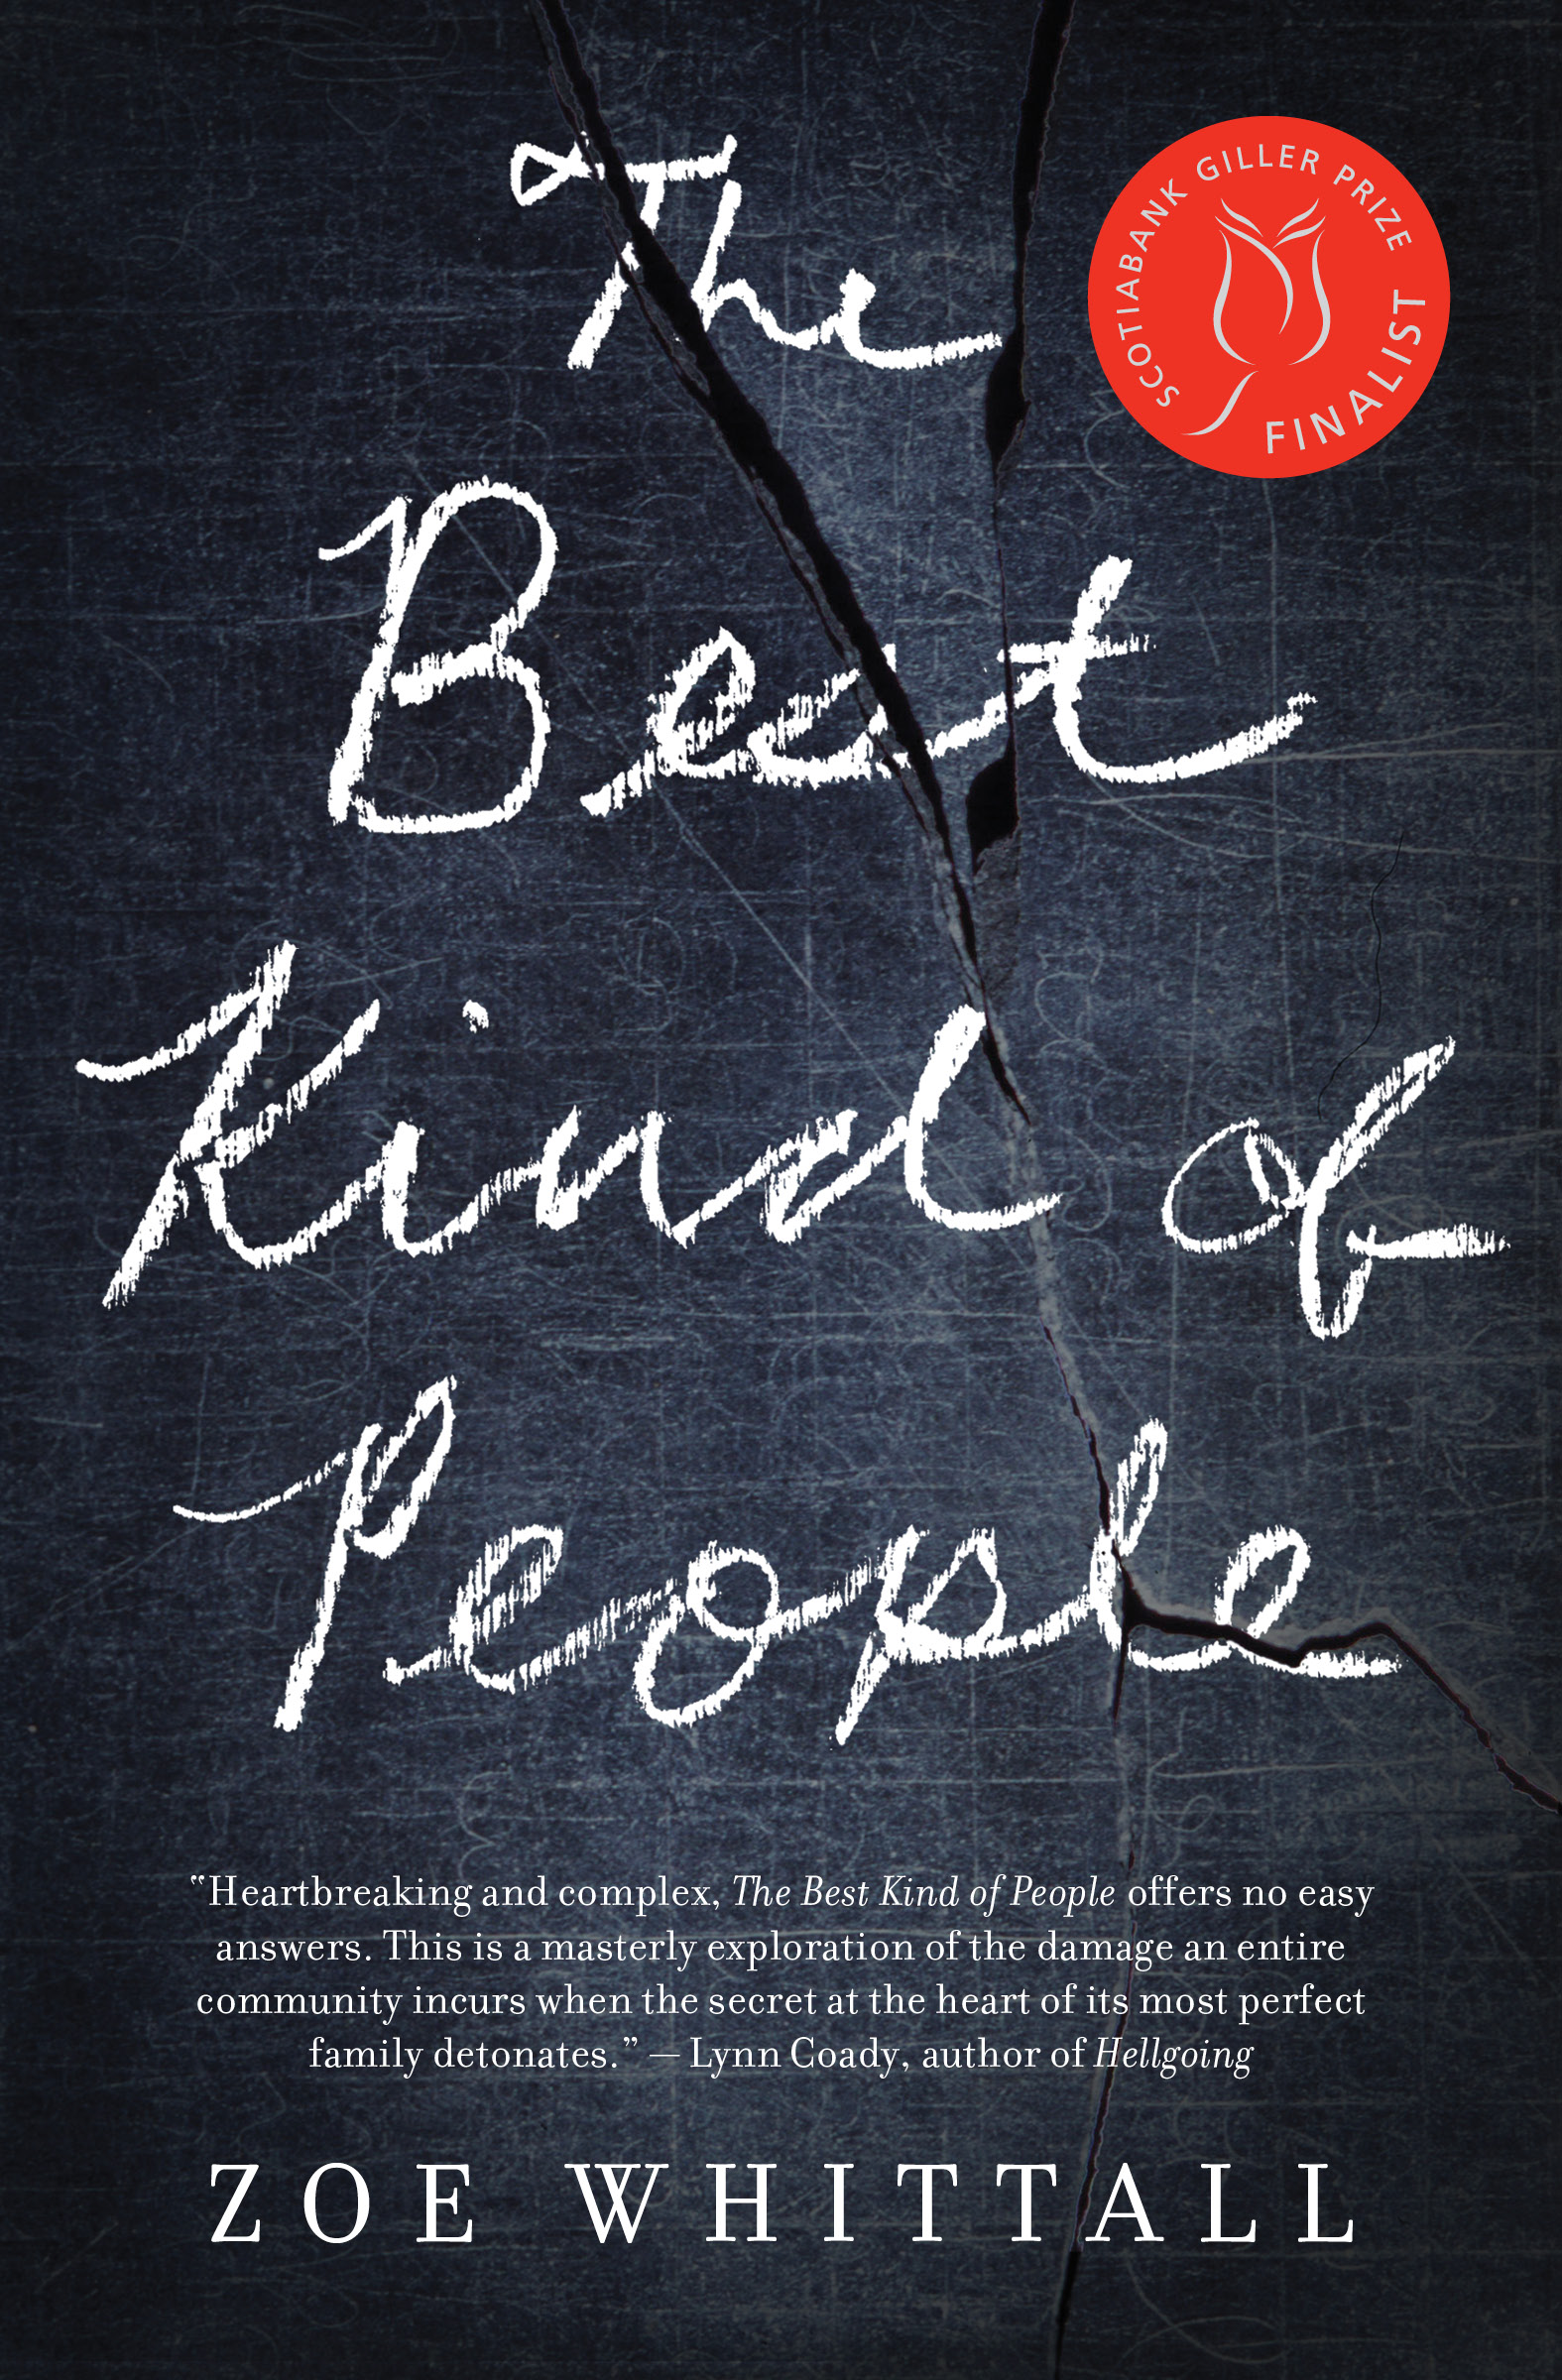 Cover of the book The Best Kind of People by Zoe Whittall